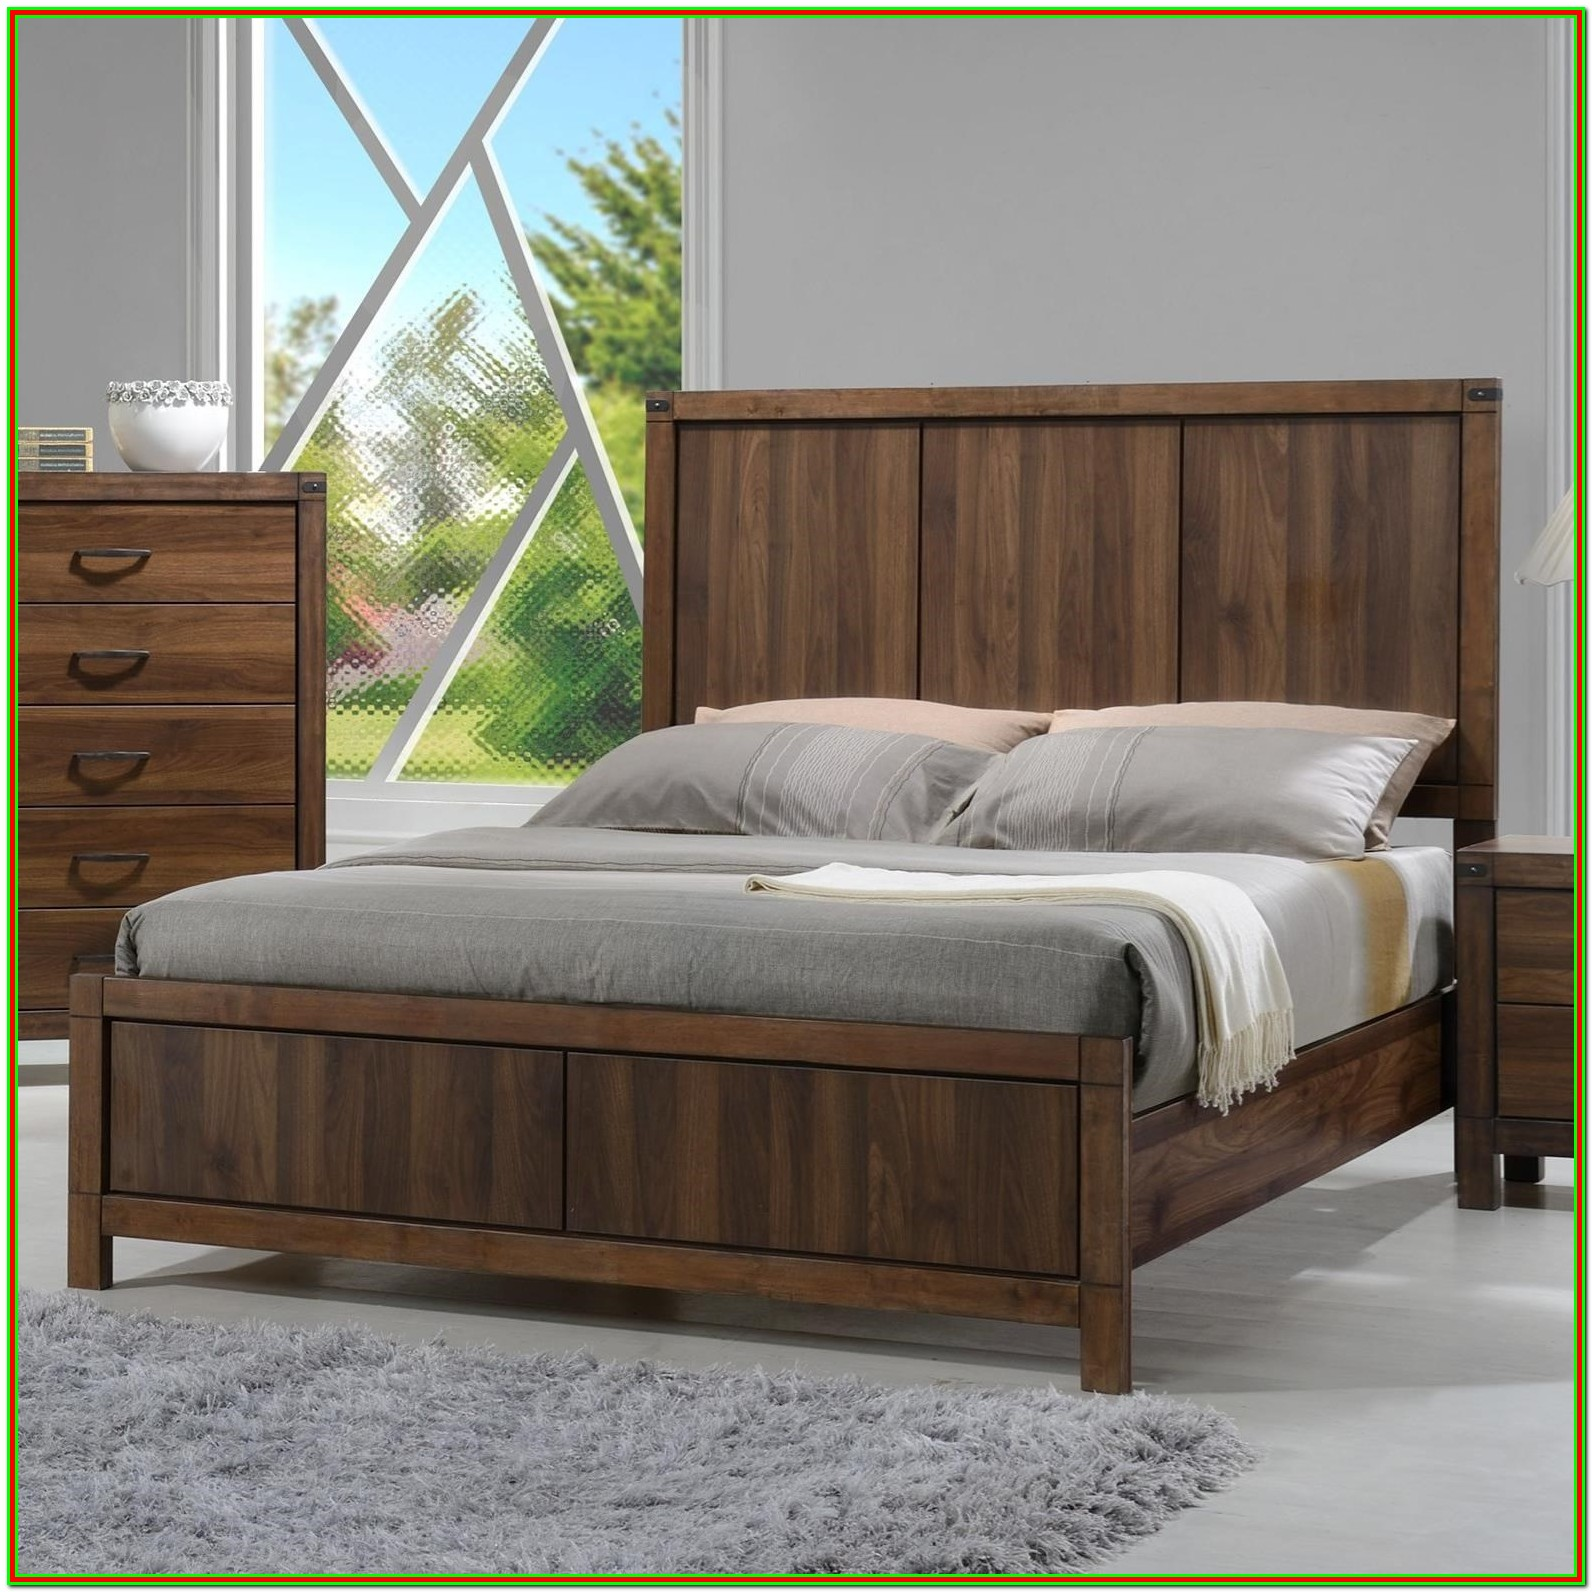 Queen Size Bed Rails For Headboard And Footboard